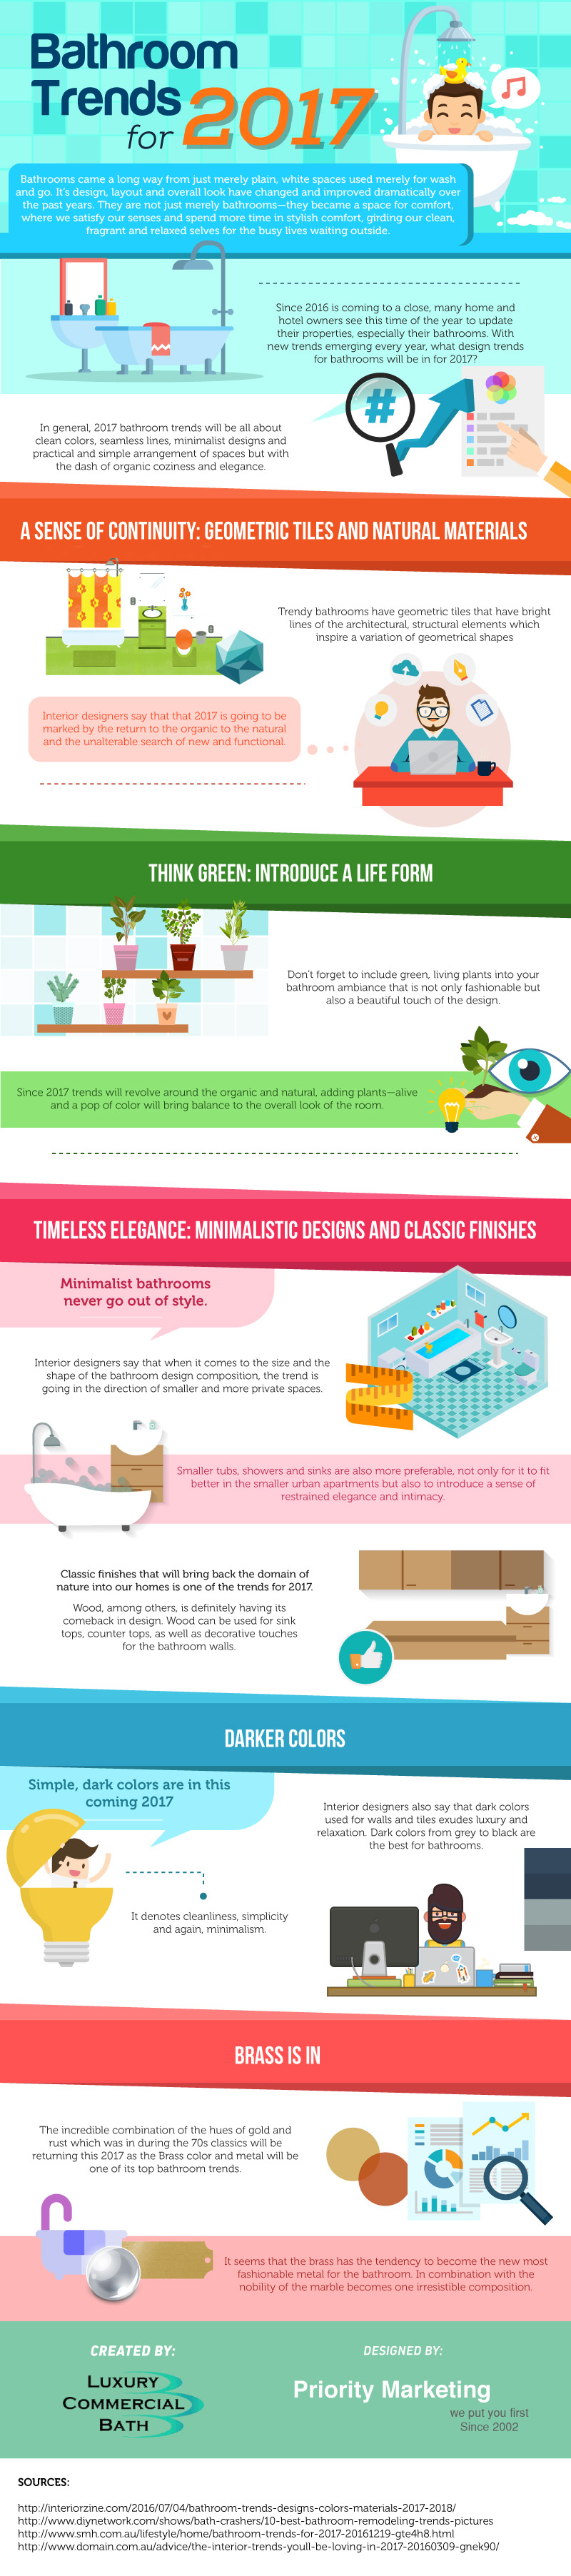 Bathroom Trends for 2017 [Infographic]